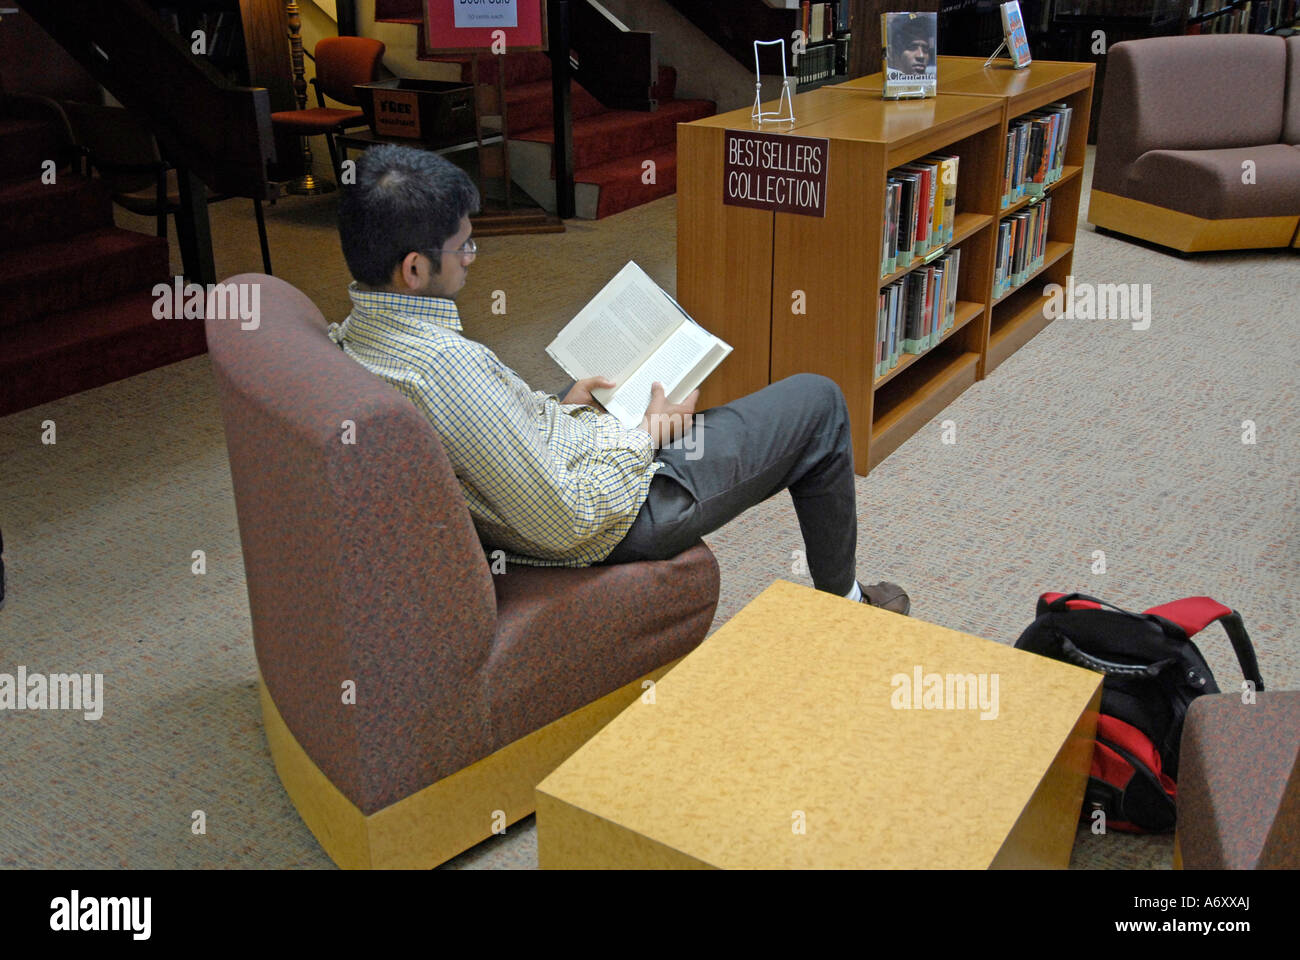 Students Studying at Thad Buckner Building - Stock Image